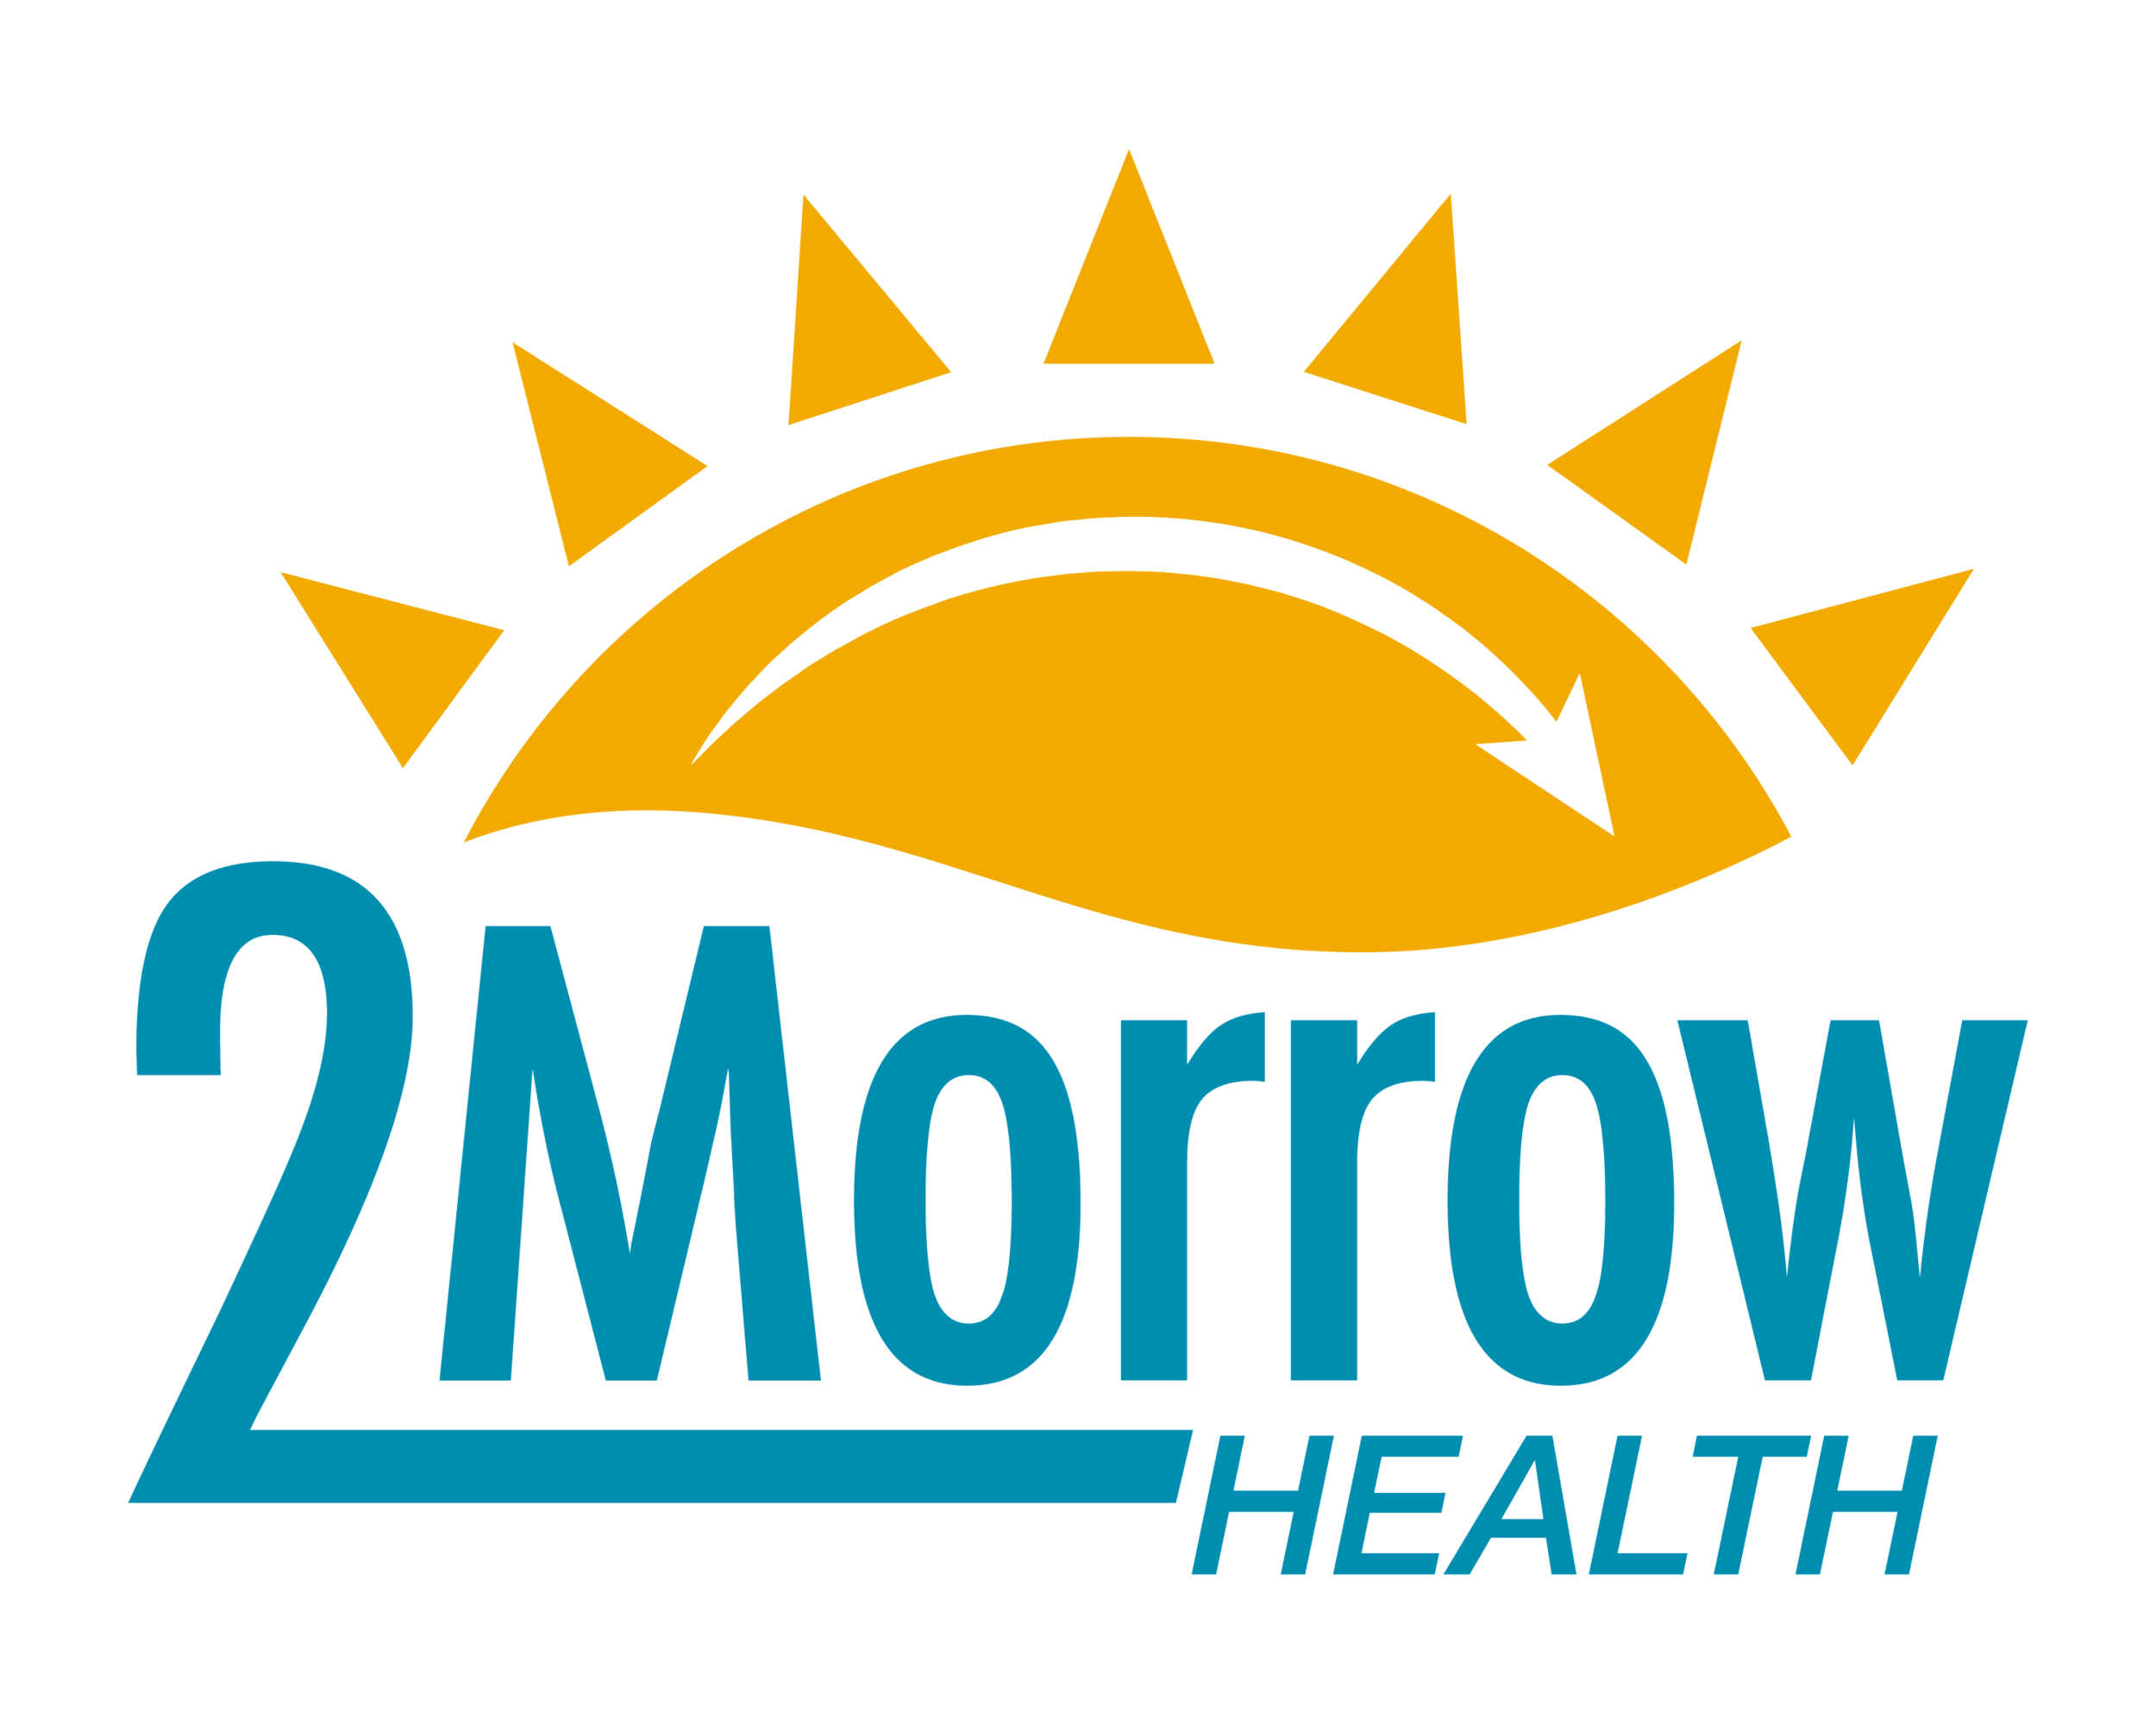 2Morrow_Health_logo